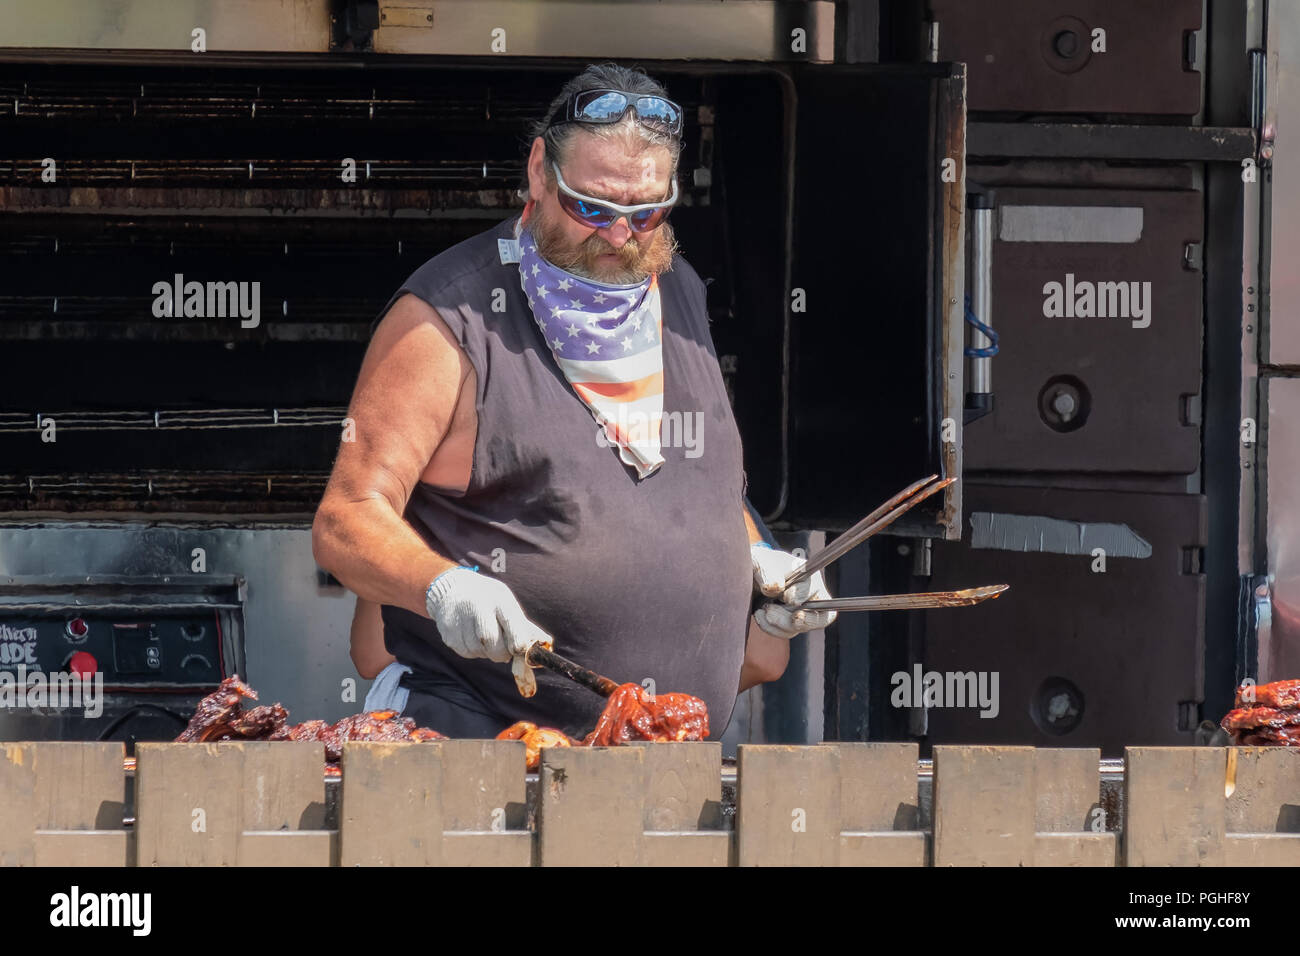 Pit Master Stock Photos & Pit Master Stock Images - Alamy